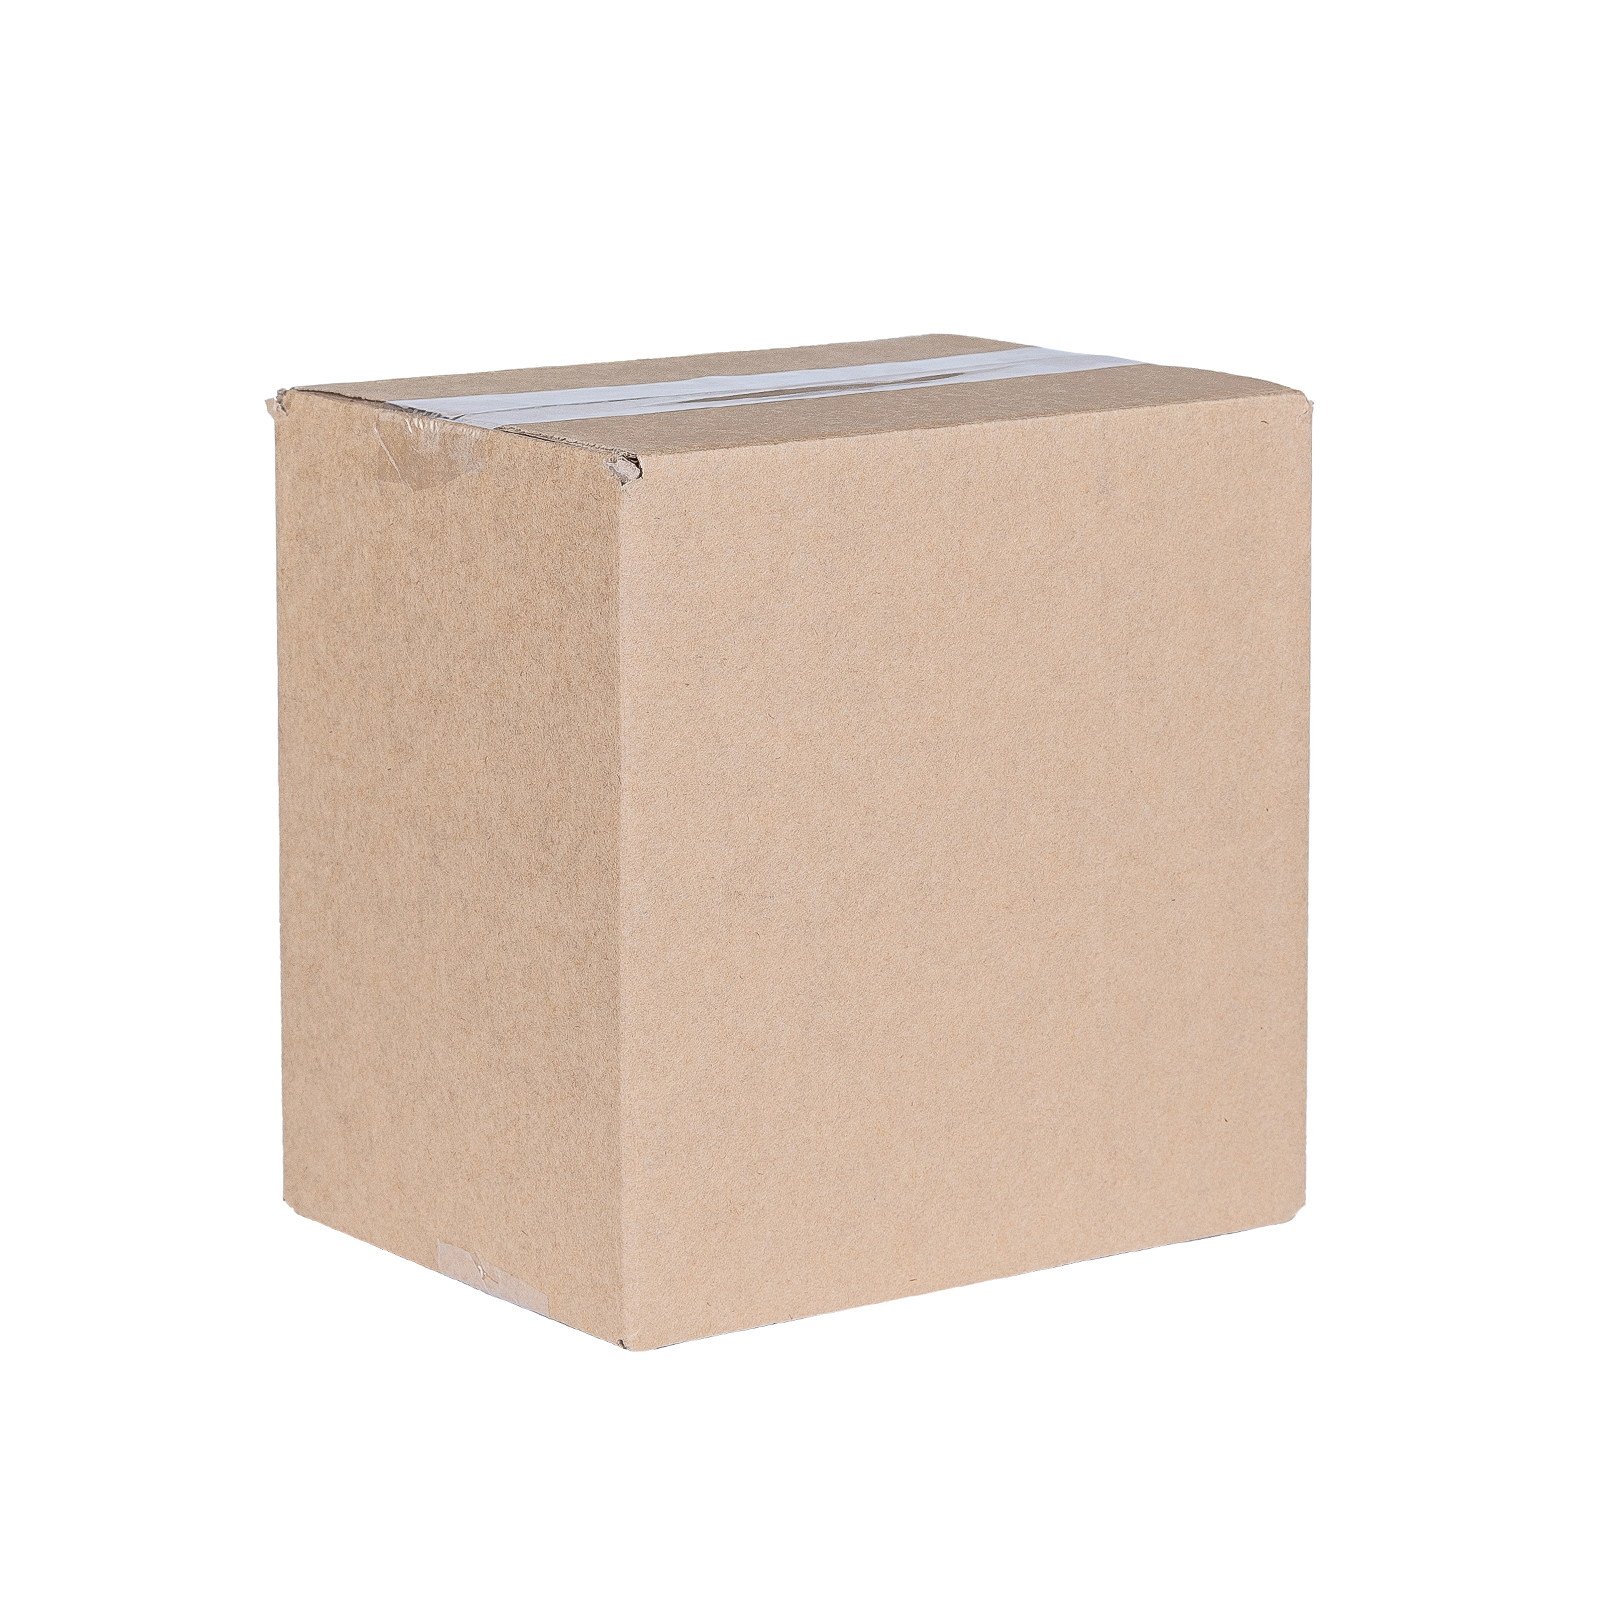 Wrap & Move 200 x 150 x 200mm Packing Box